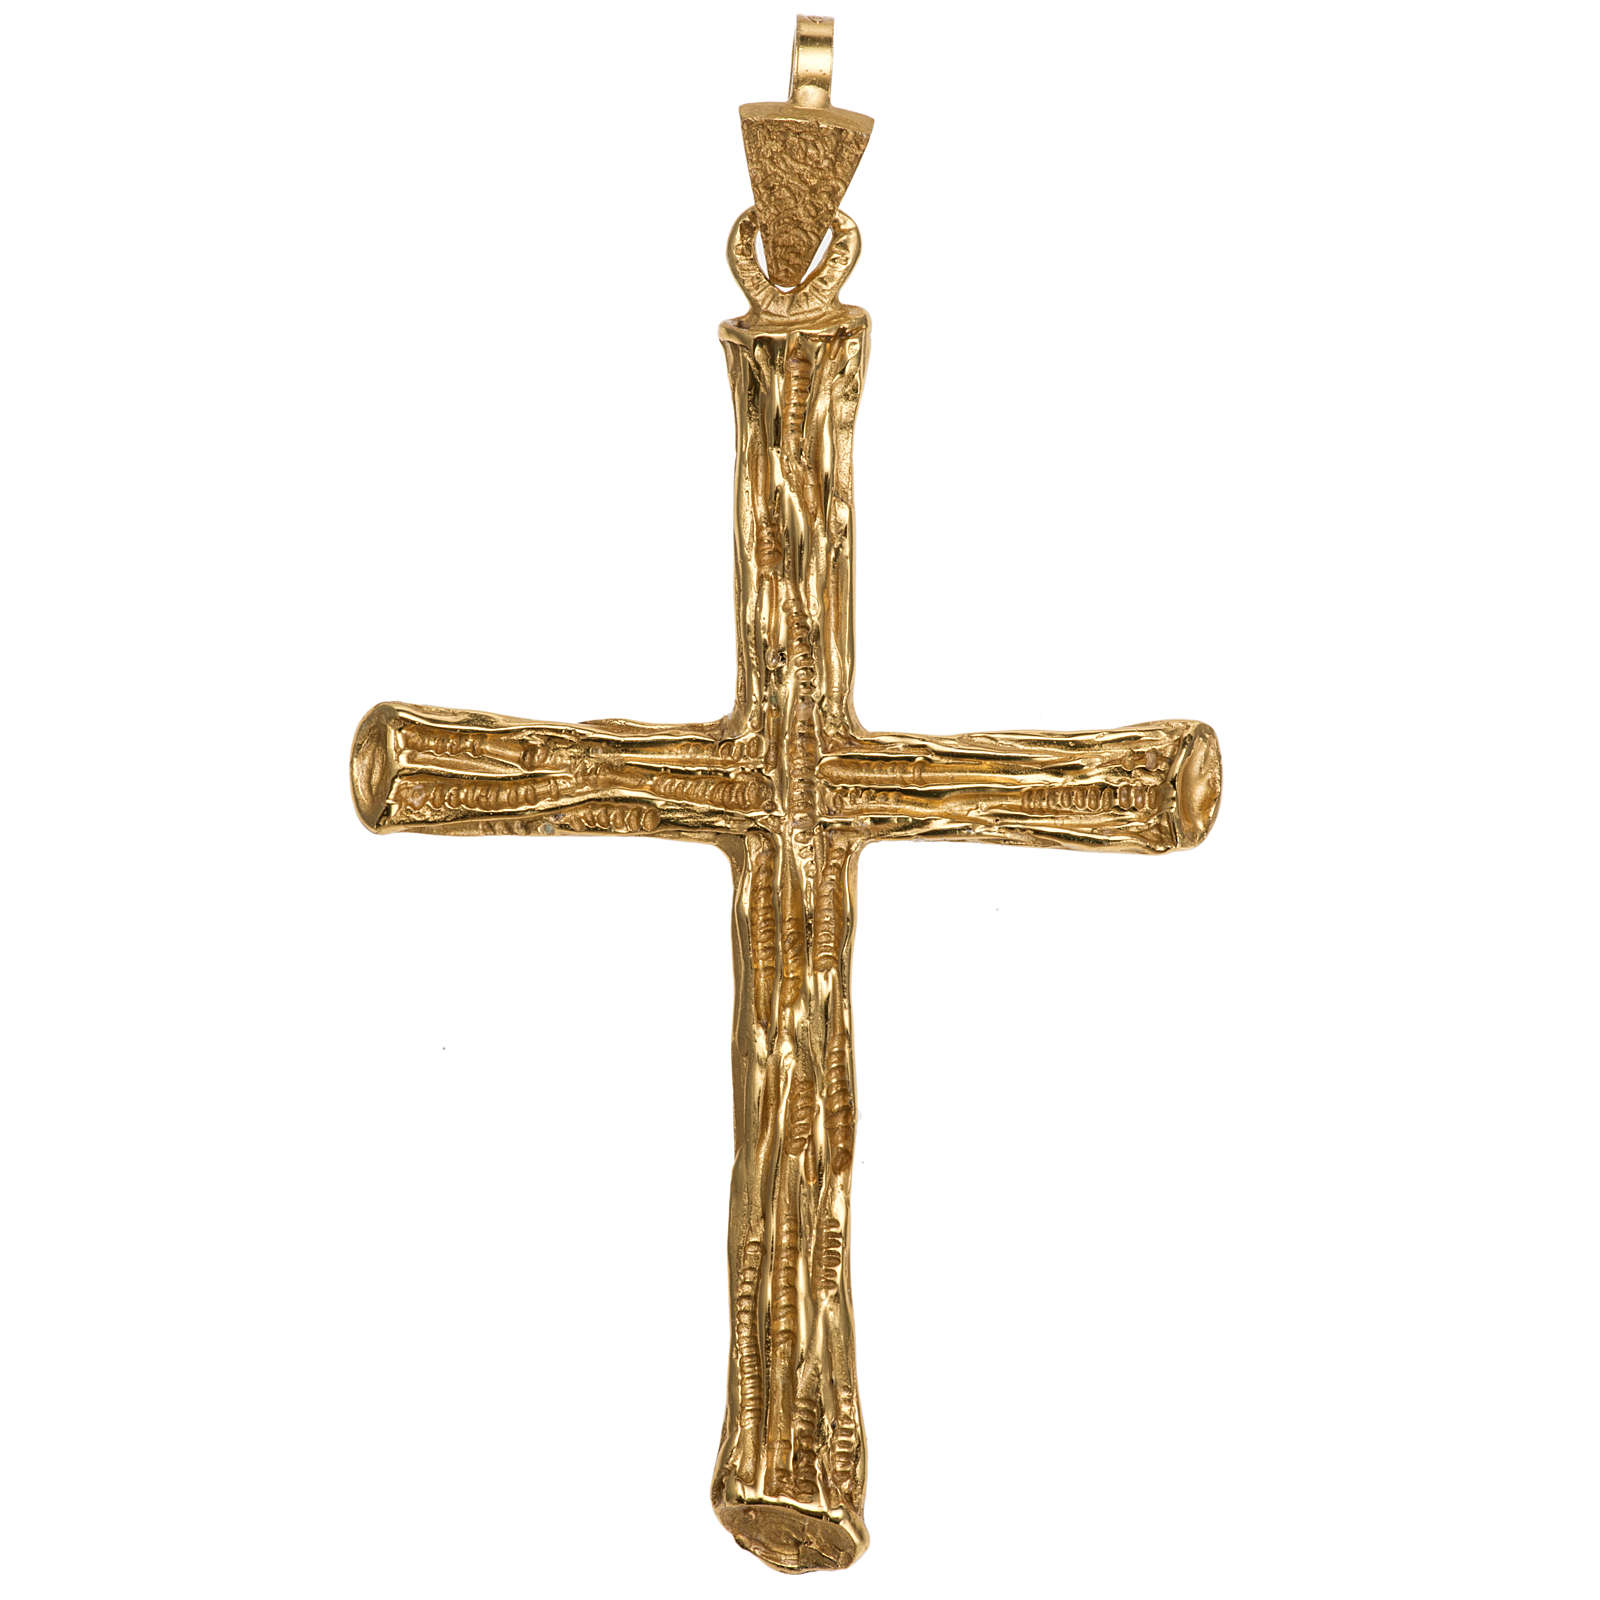 Pectoral cross made of gold-plated sterling silver 3